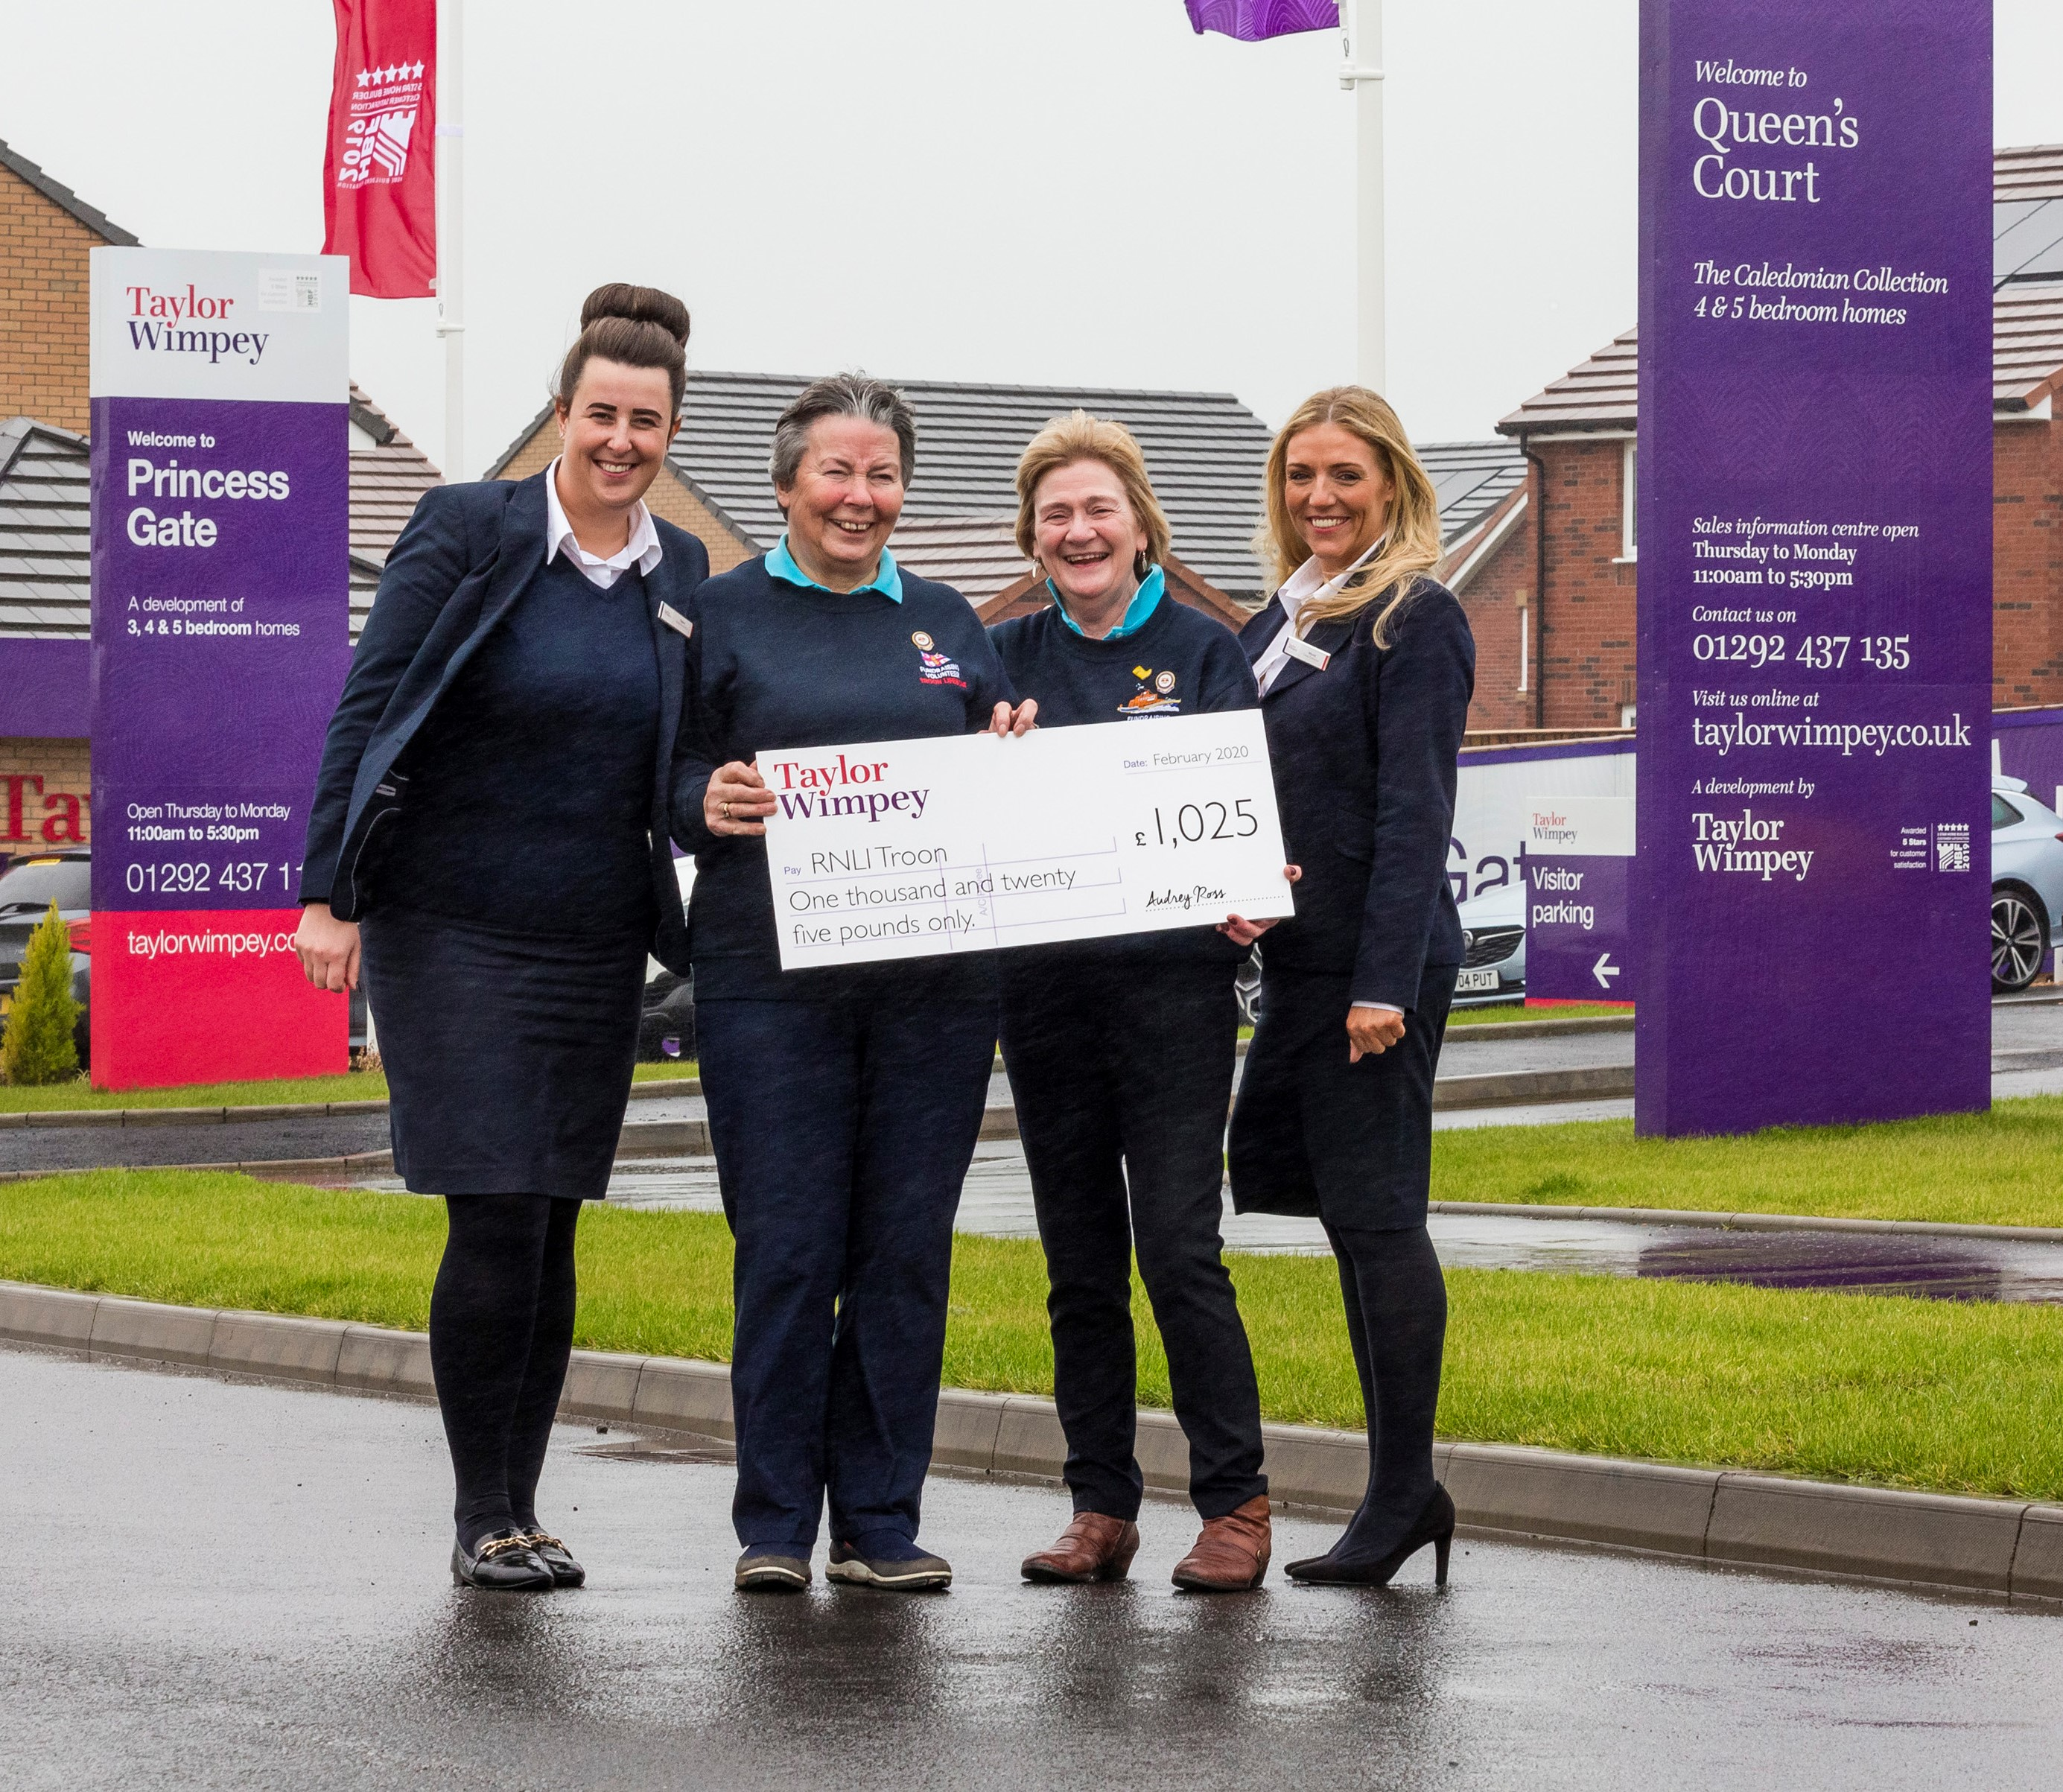 Taylor Wimpey Sales Executives in Troon - Claire Anderson and Nicola McLaughlin were on hand to present Margaret Ross and Urda Cotter from Troon RNLI with the cheque for £1025.